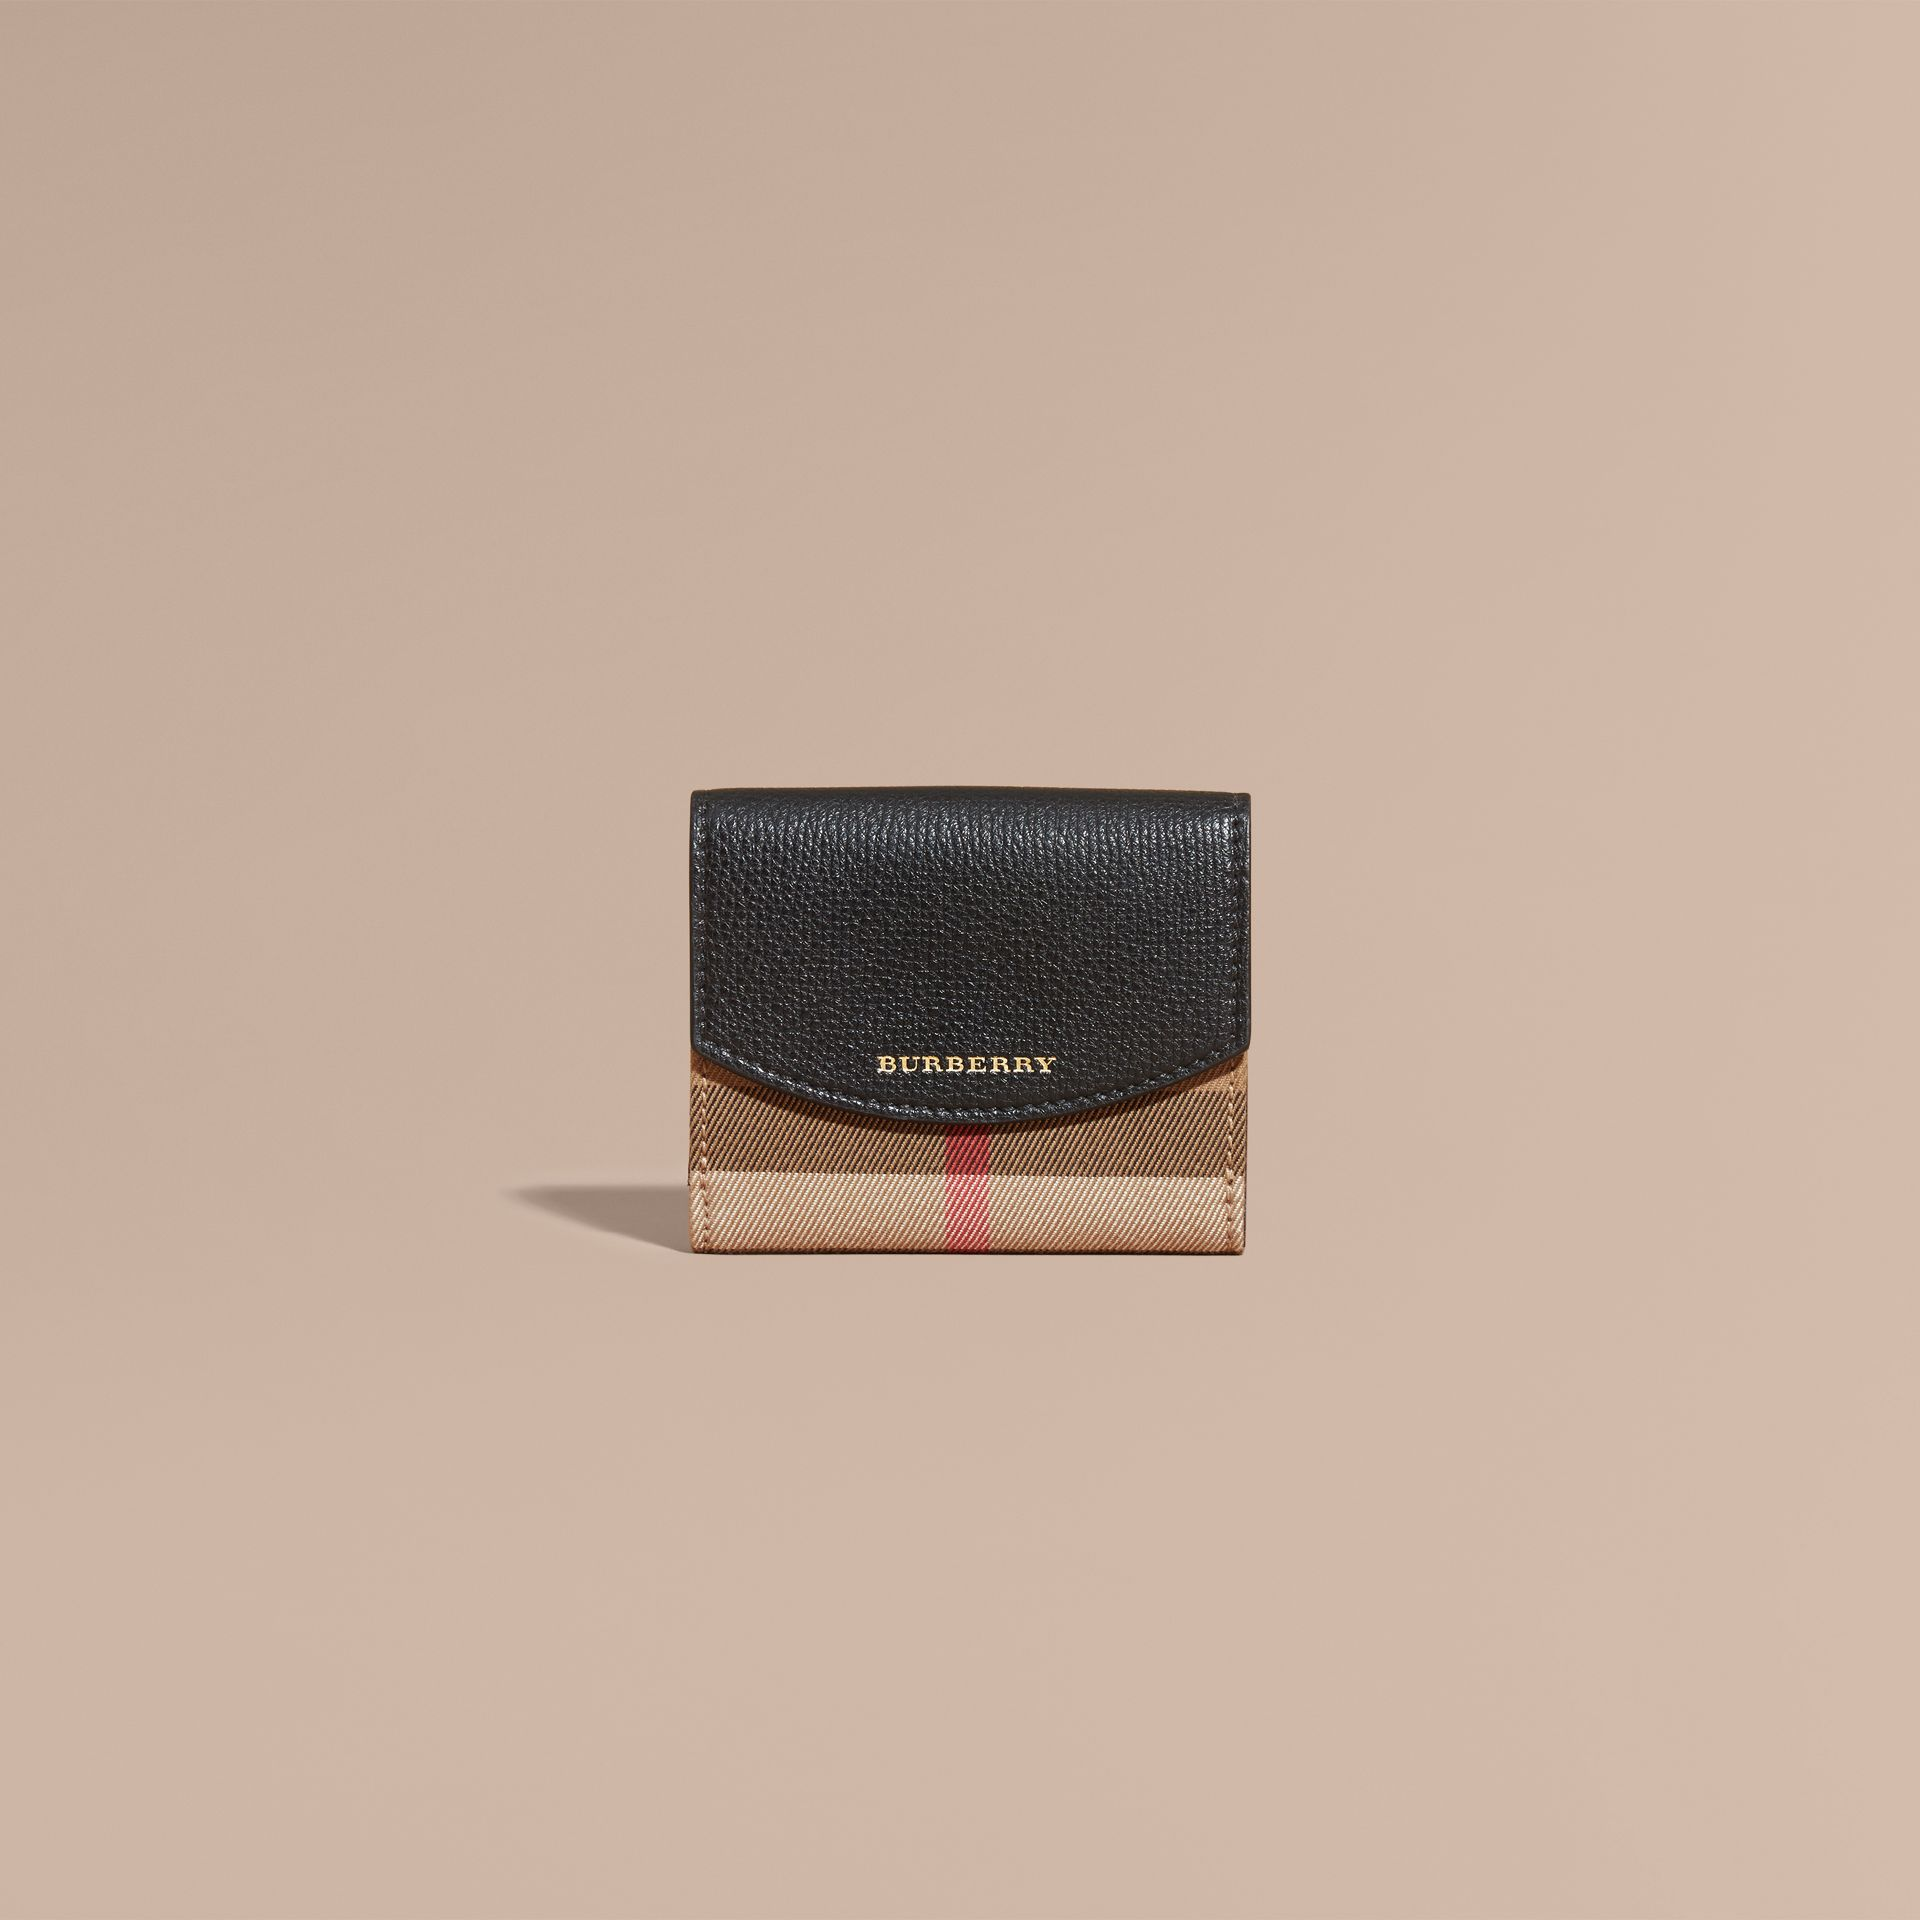 House Check and Leather Wallet in Black - Women | Burberry - gallery image 3